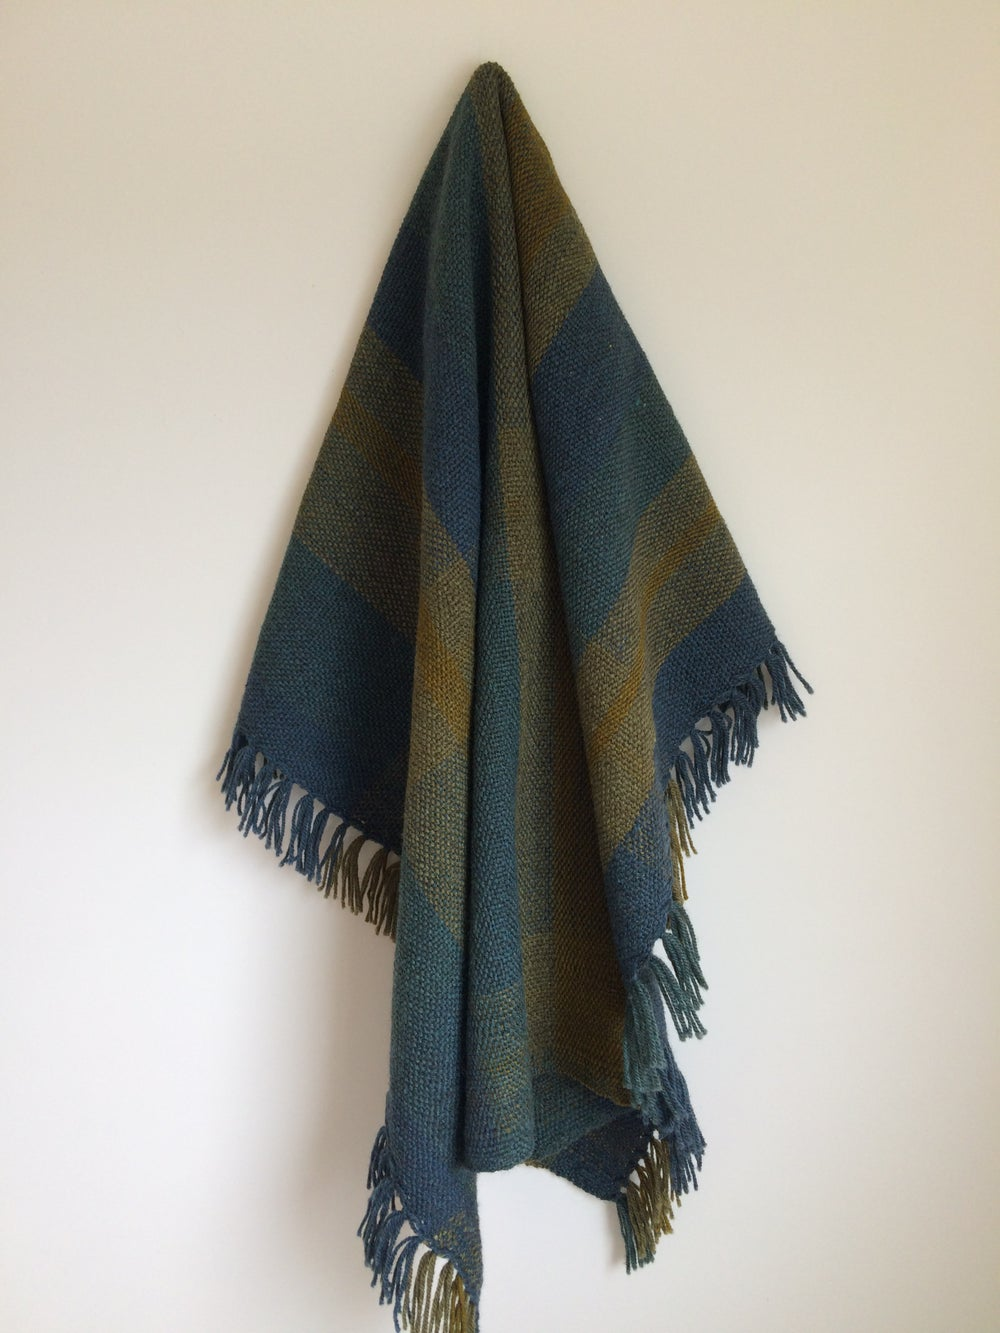 Image of Plaid Throw Ophelia Mikkelson Jones x Colourist Weaving